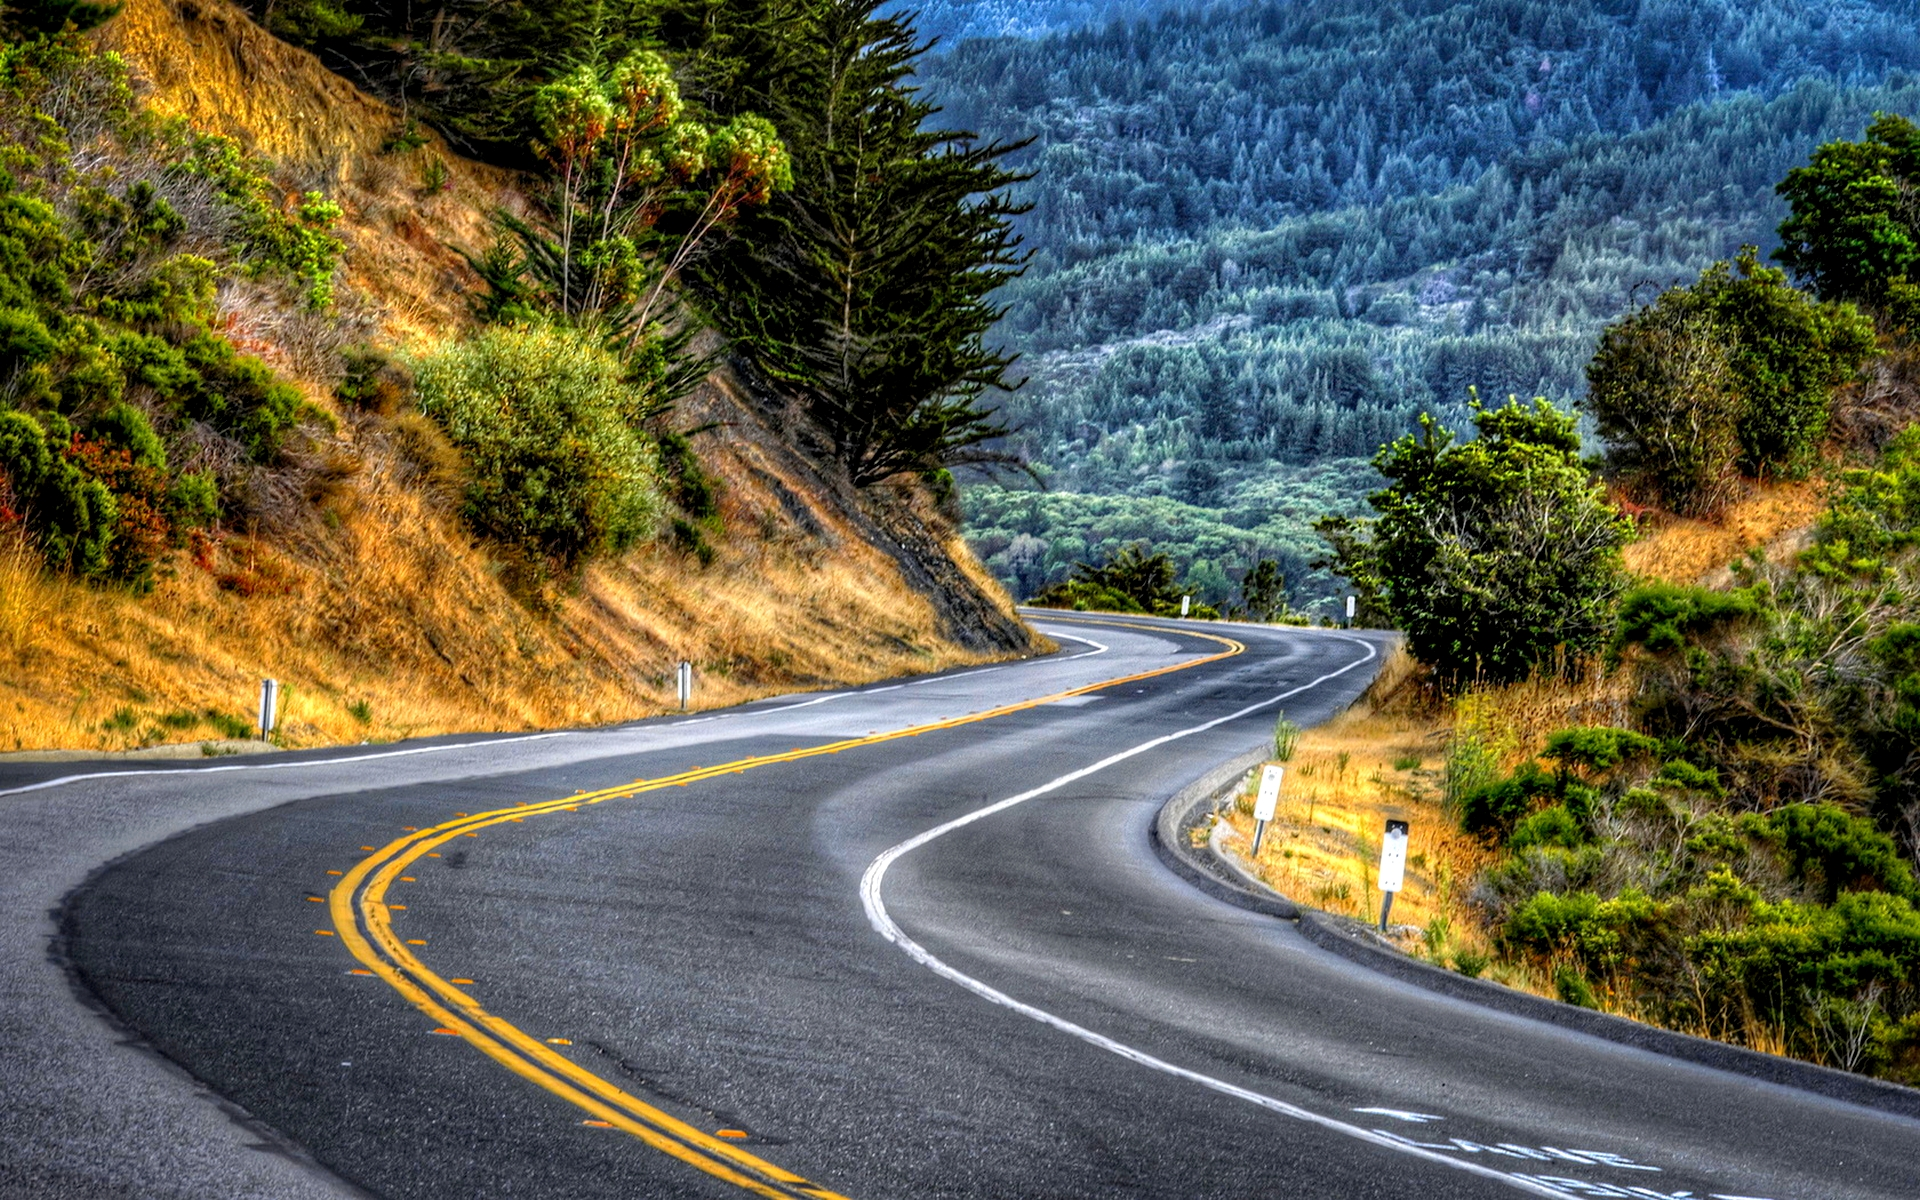 Road Wallpaper HD